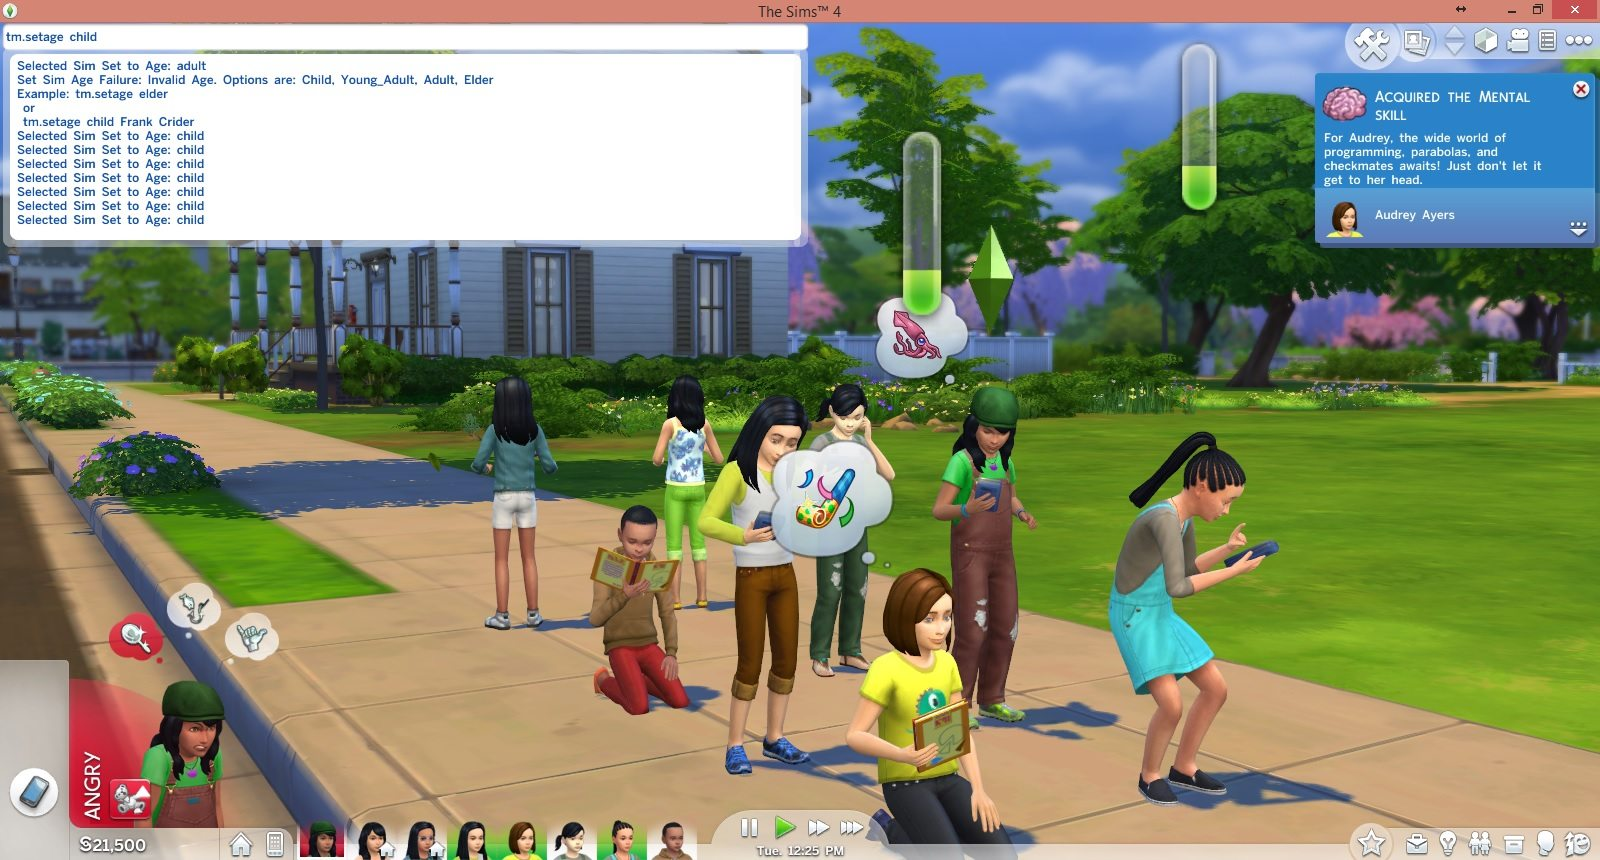 Sims 4 Cheats - Sims 4 Cheats Activate